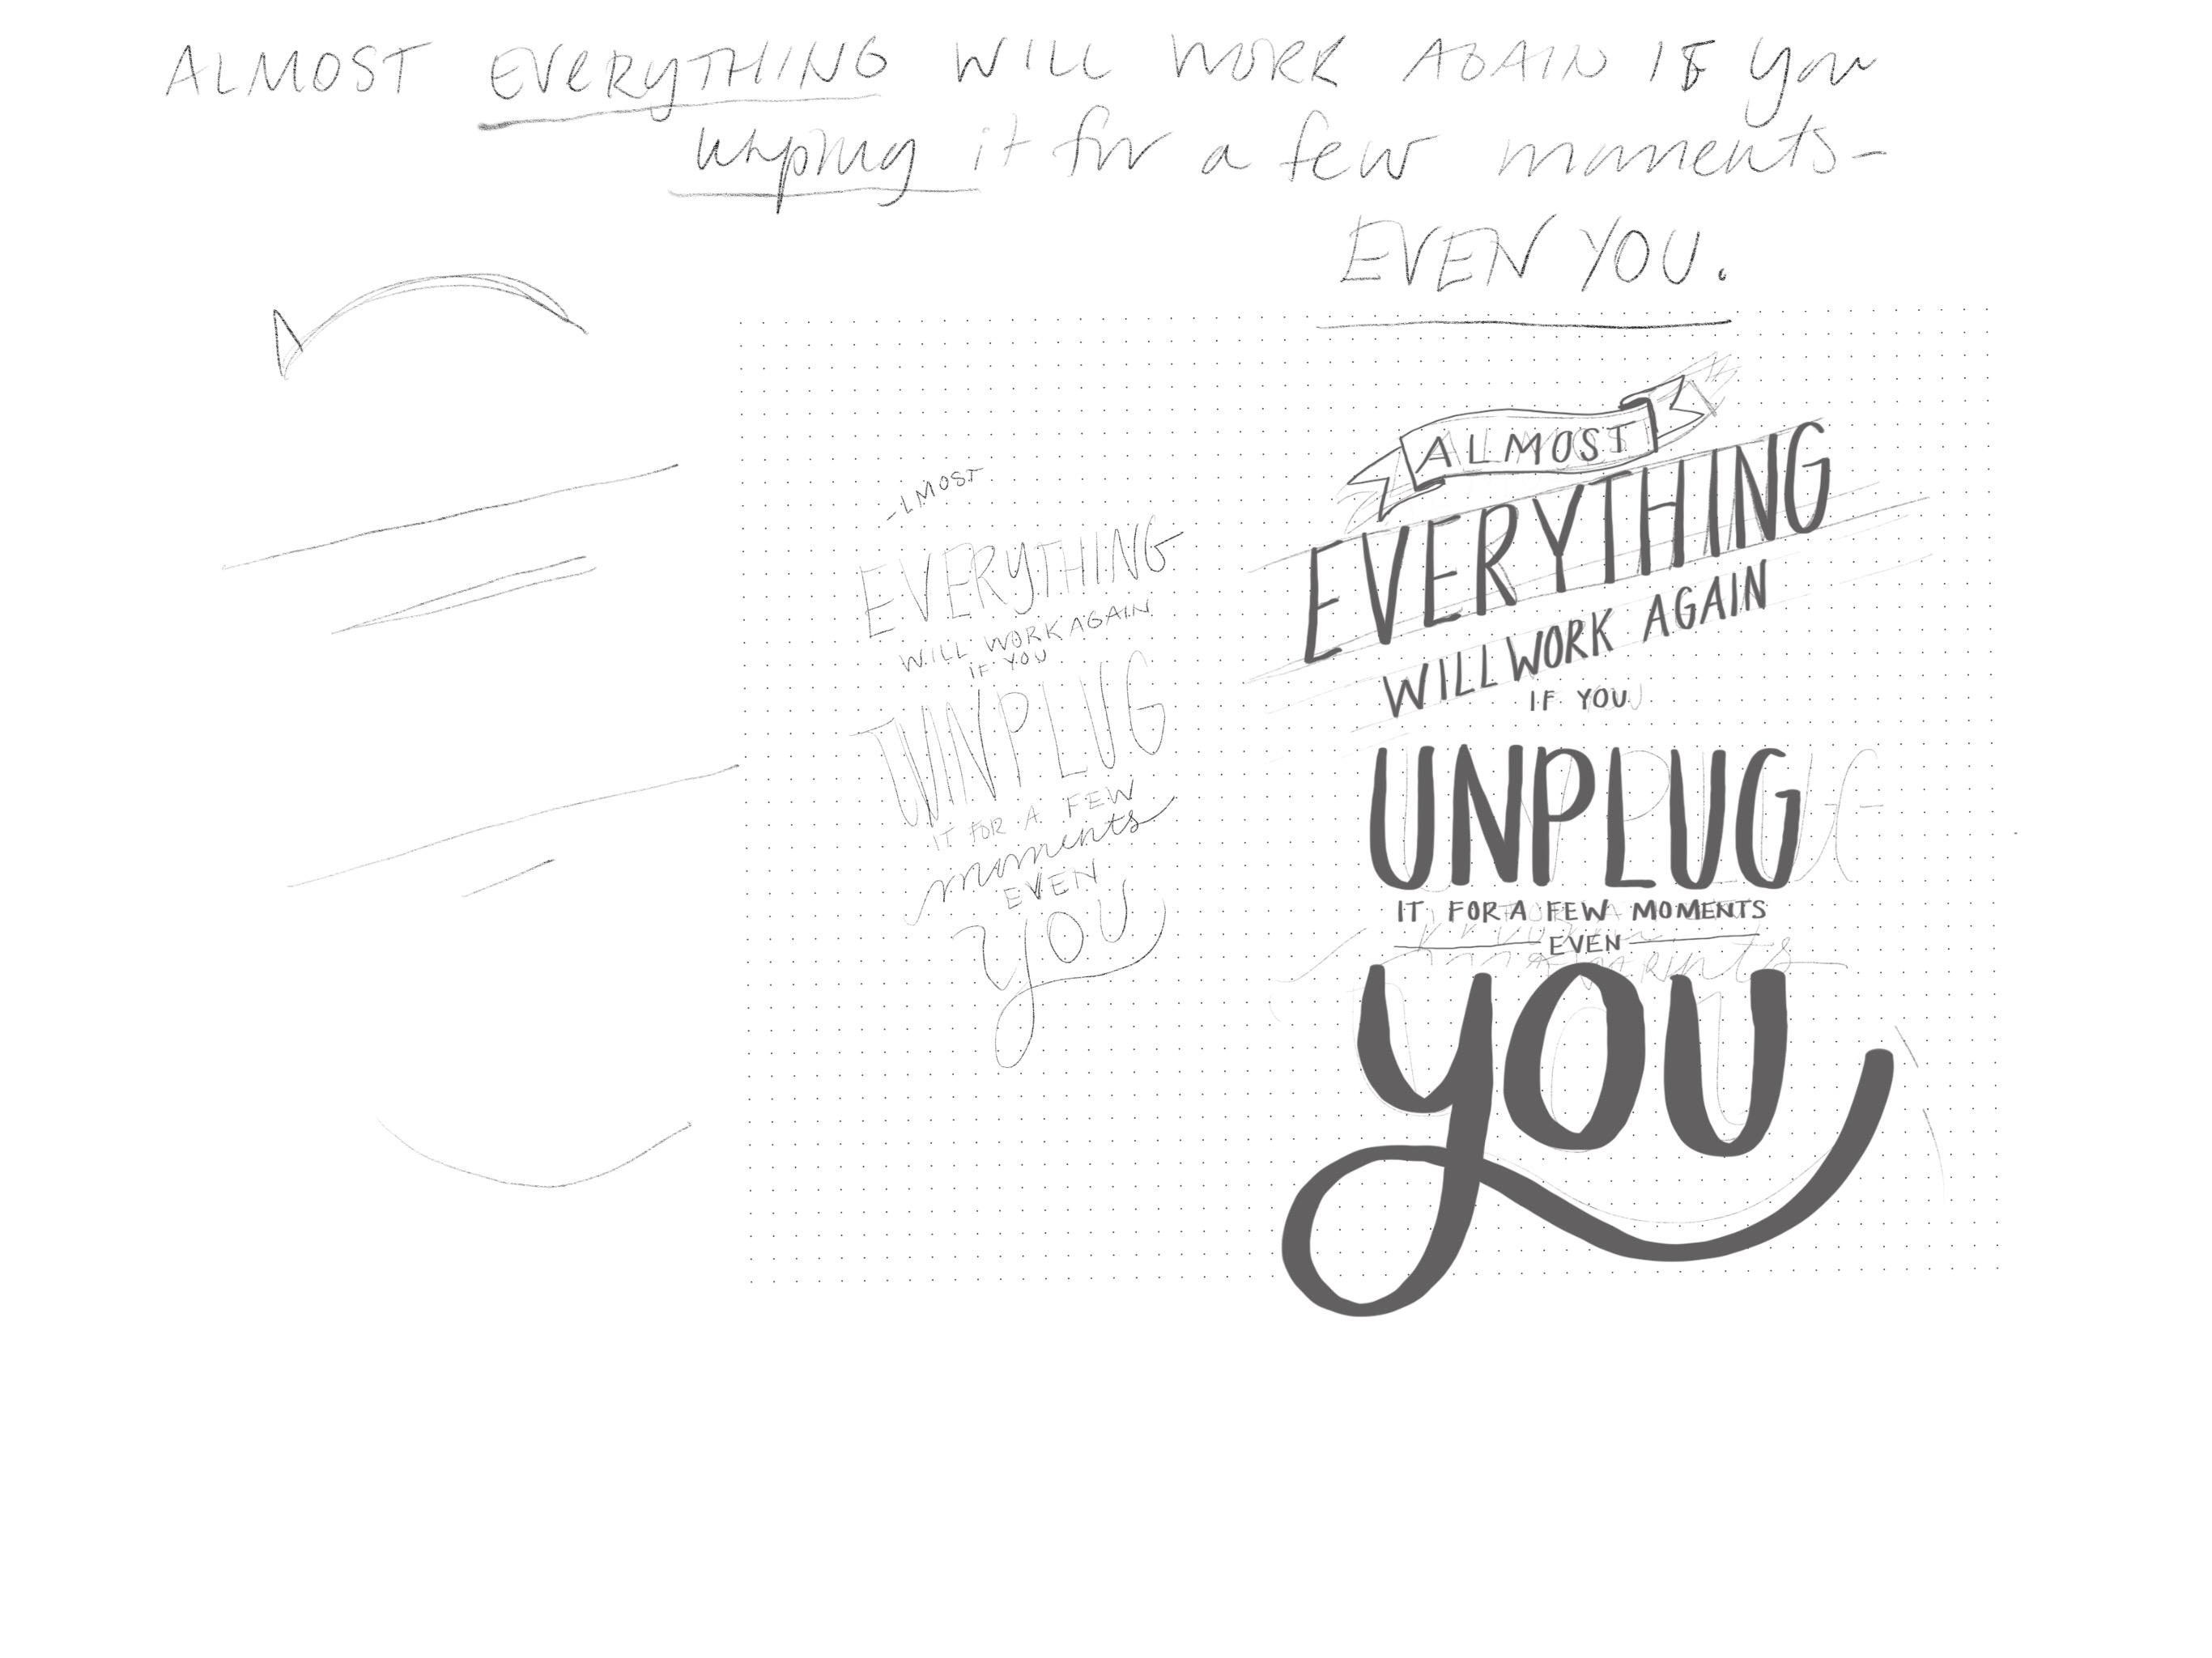 Almost everything even you. skillshare projects